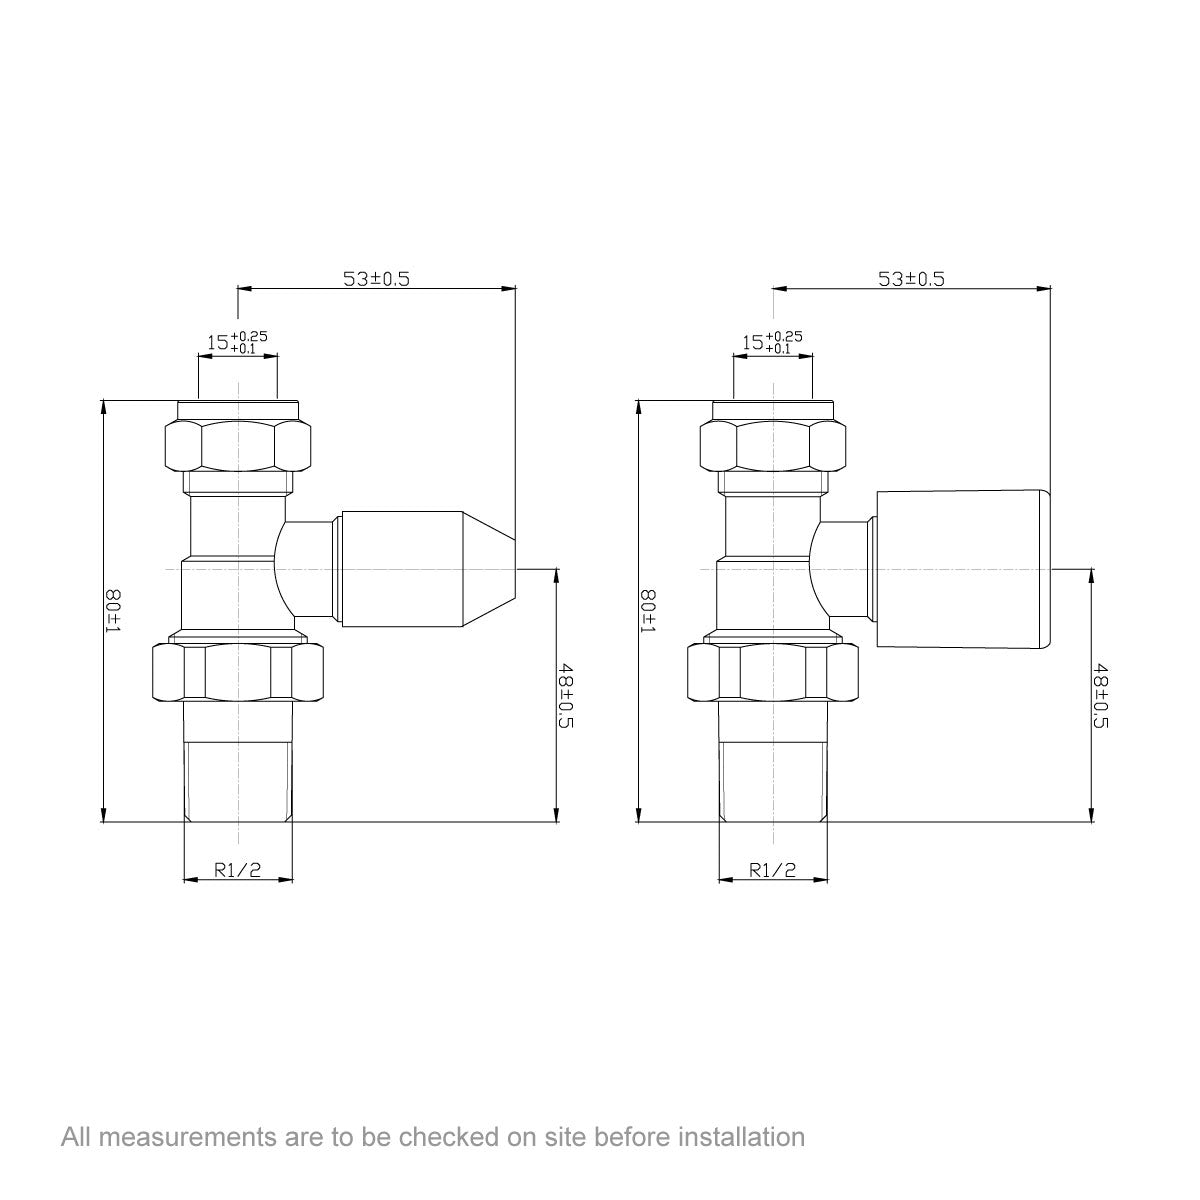 Dimensions for Clarity straight radiator valves